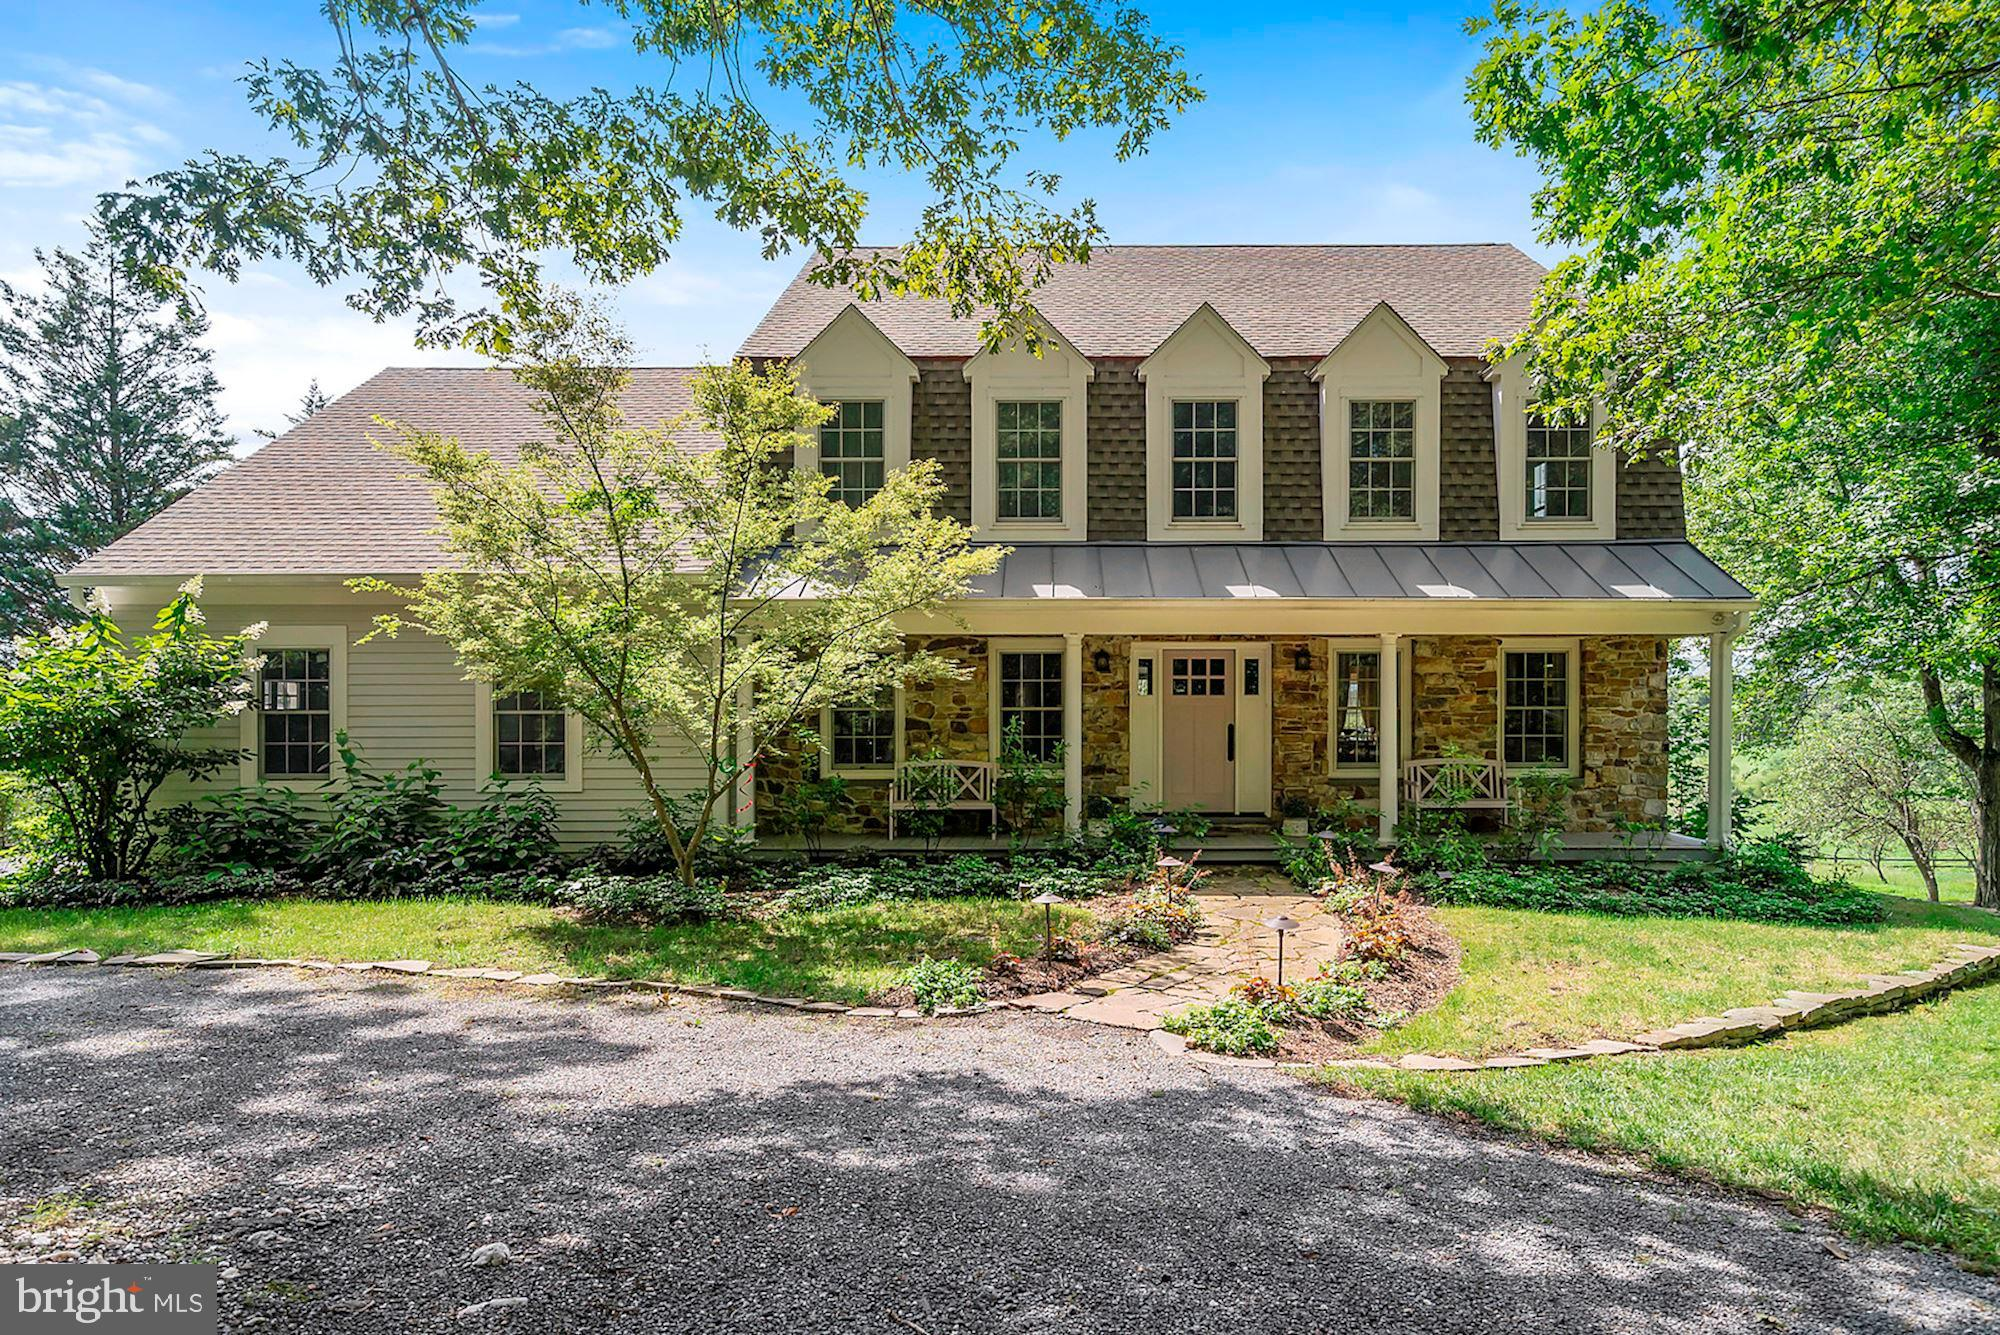 20369 Woodtrail Road, Round Hill, VA 20141